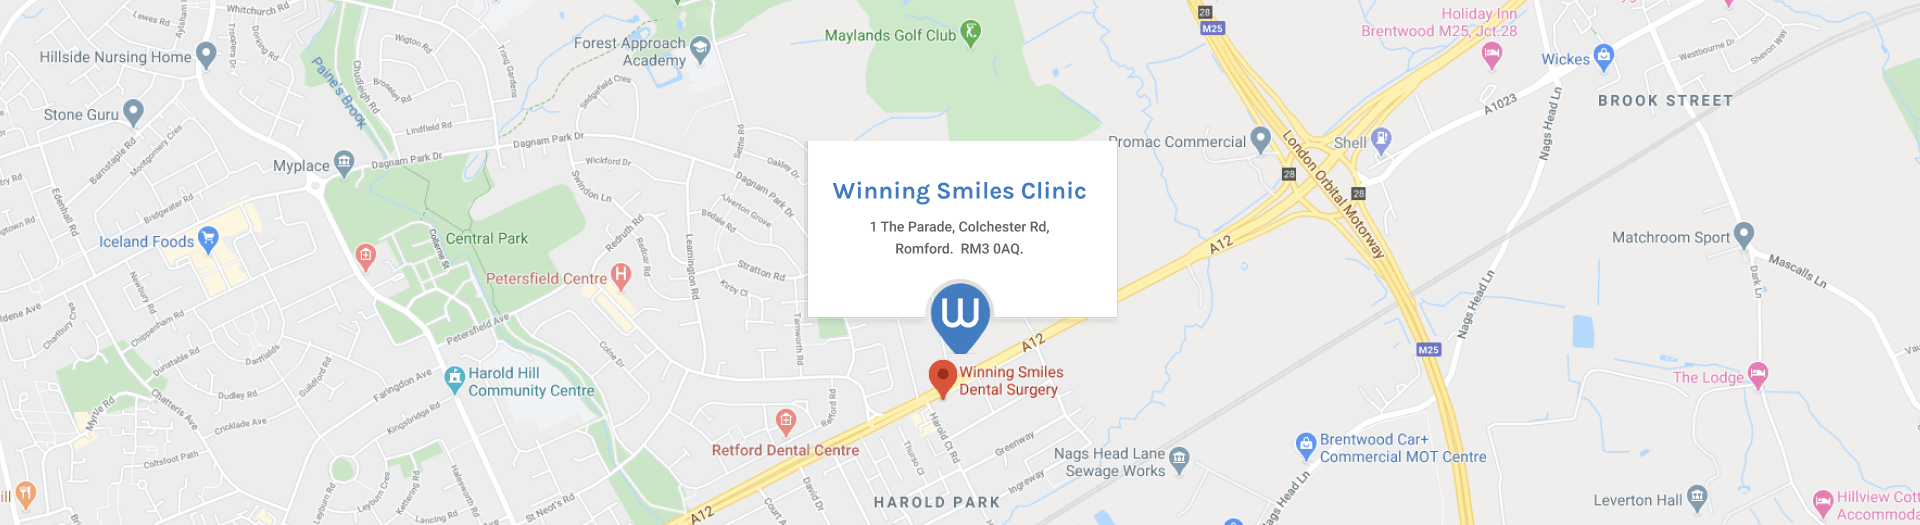 winning_smiles_location